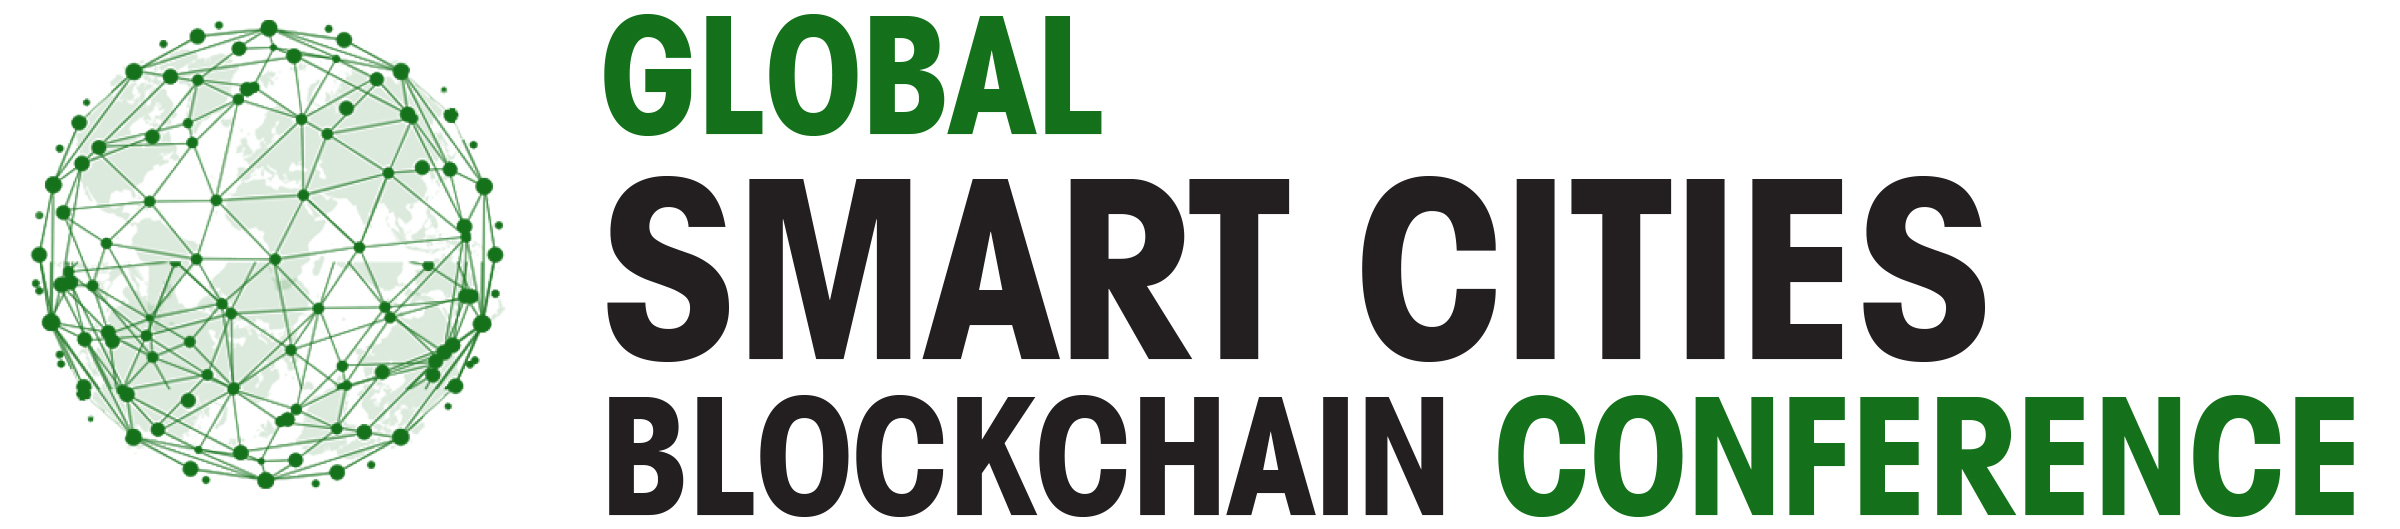 Global Smart Cities Blockchain Conference